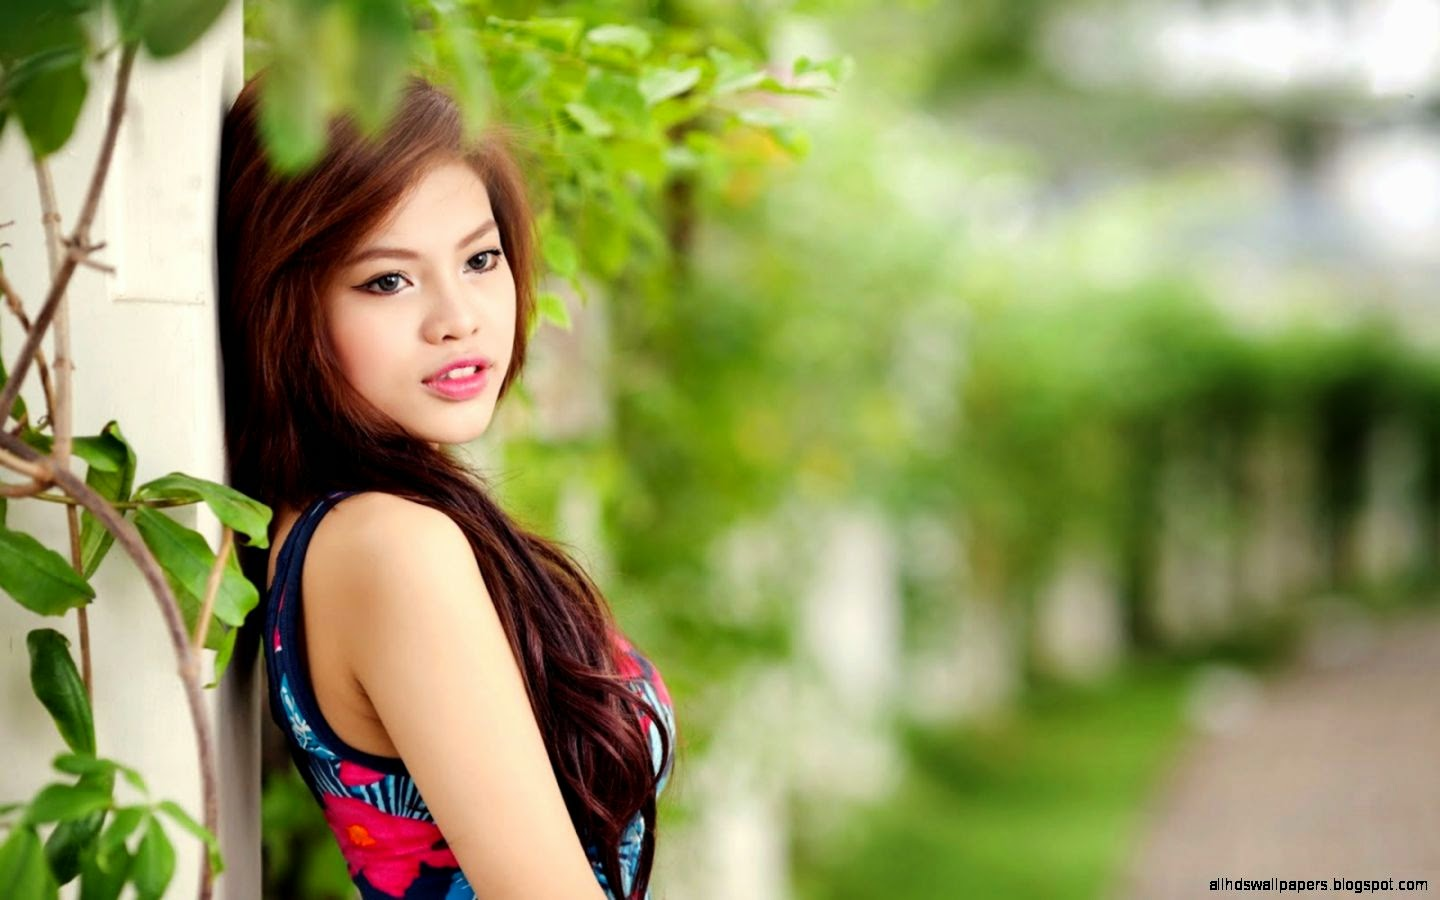 cute girl wallpaper free download desktop | all hd wallpapers